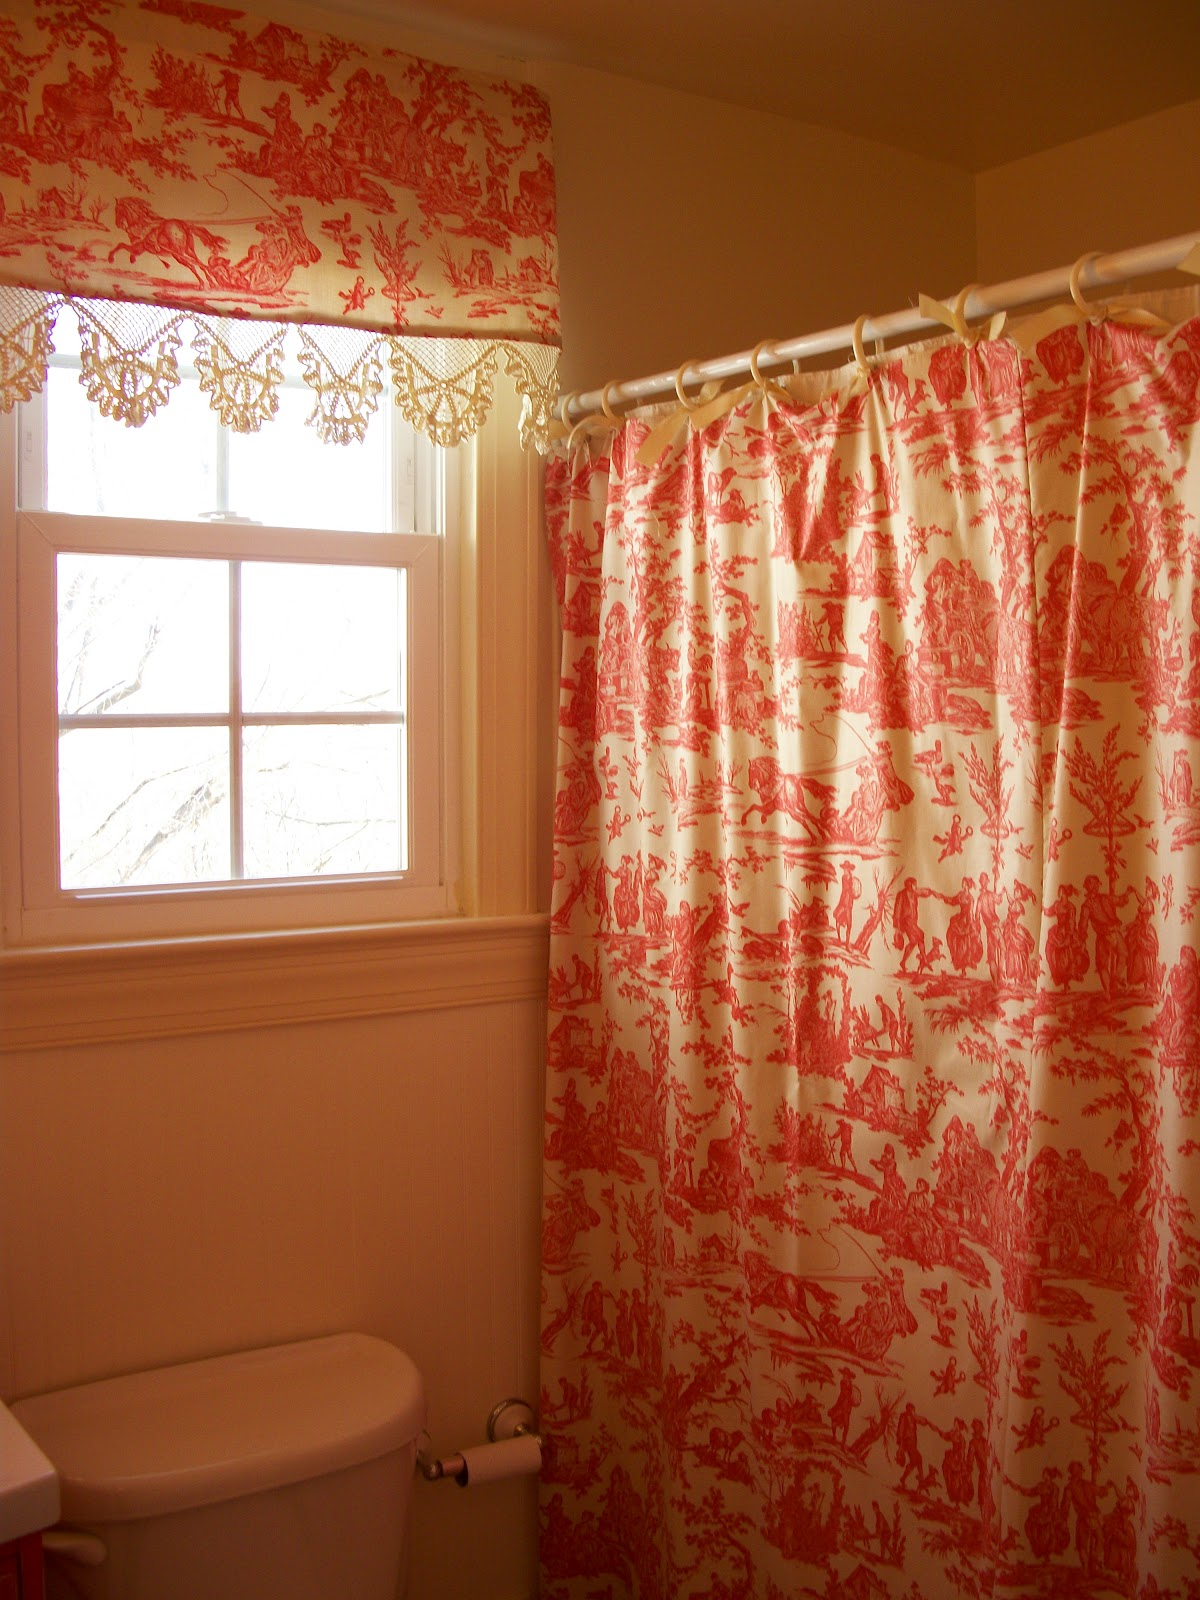 Magnetic Tie Backs For Curtains Elegant Curtains and Valances